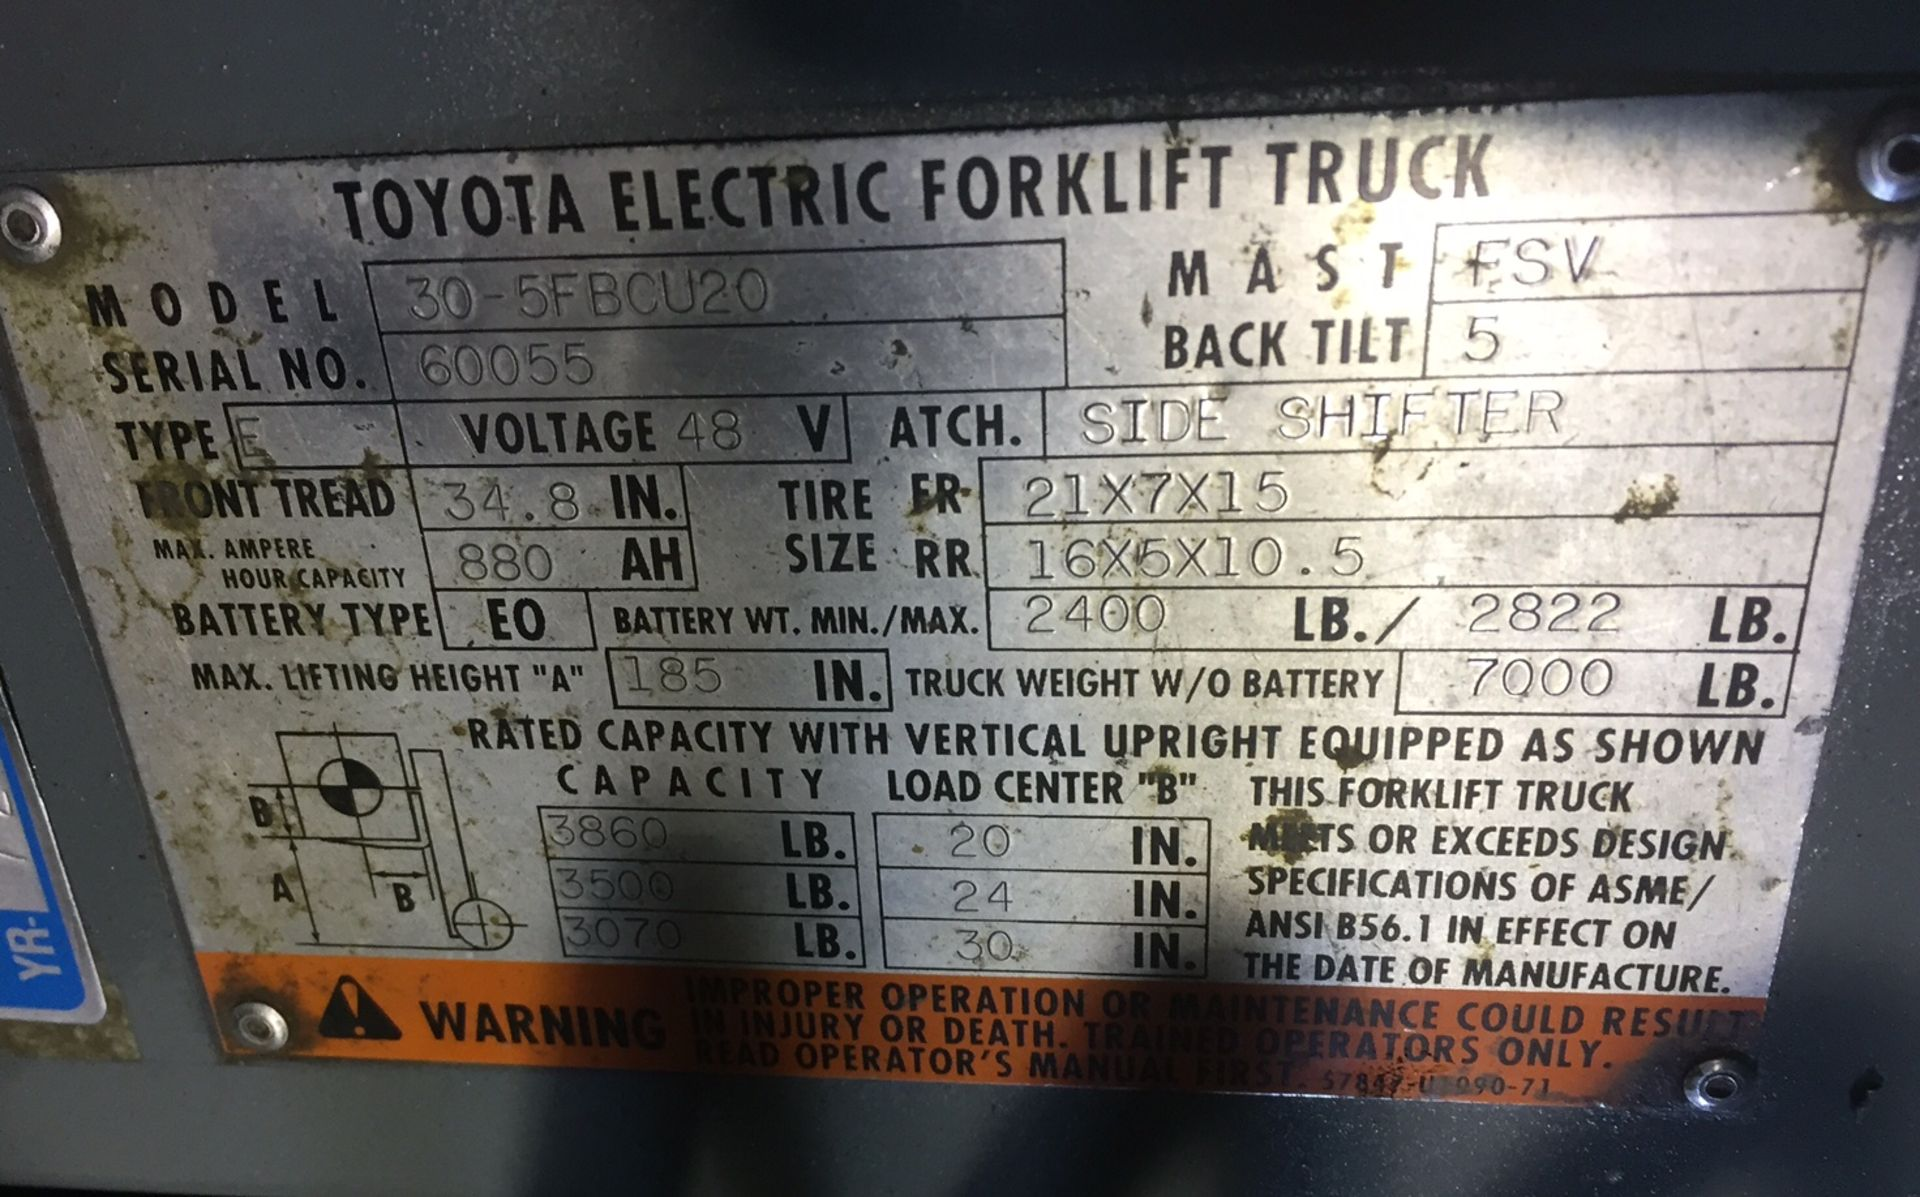 TOYOTA (30-5FBCU20) 48V/36V ELECTRIC FORKLIFT WITH CHARGER - Image 3 of 3